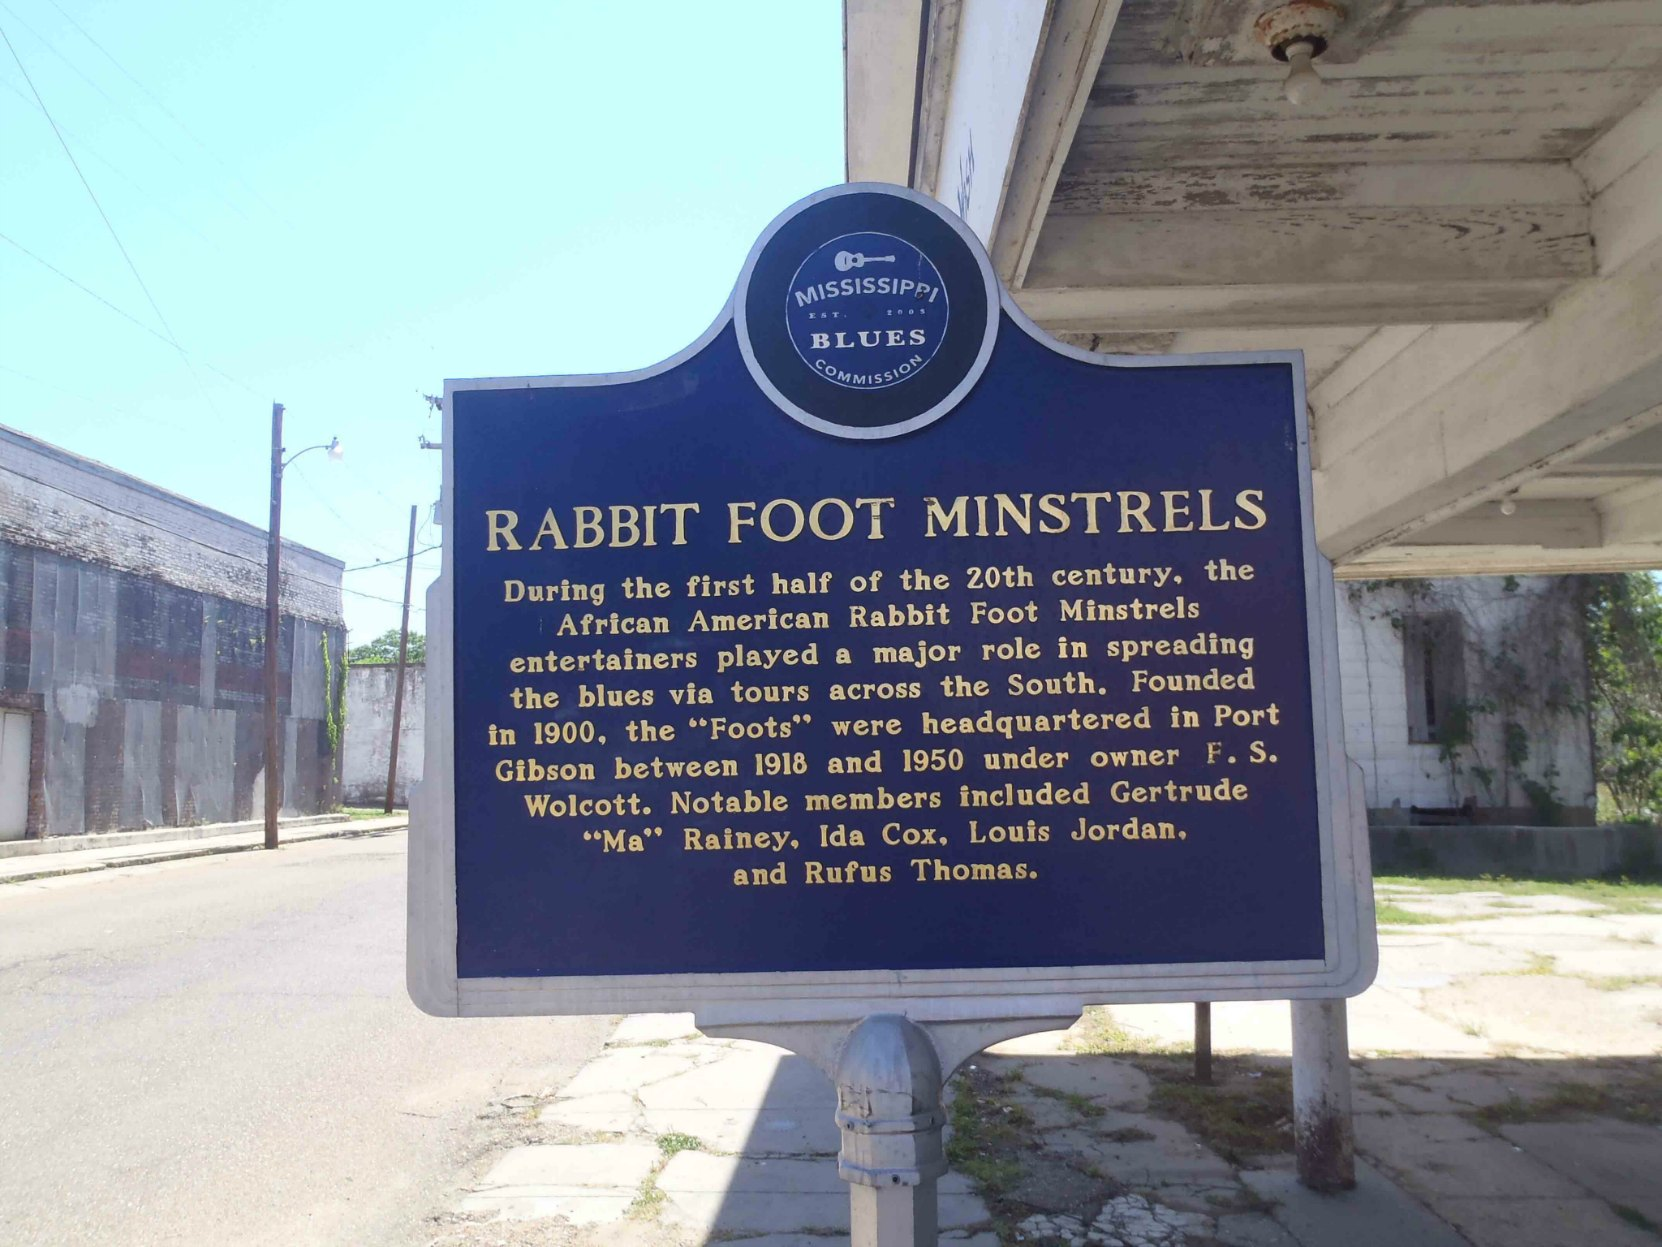 Mississippi Blues Trail marker for the Rabbit Foot Minstrels, Port Gibson, Mississippi